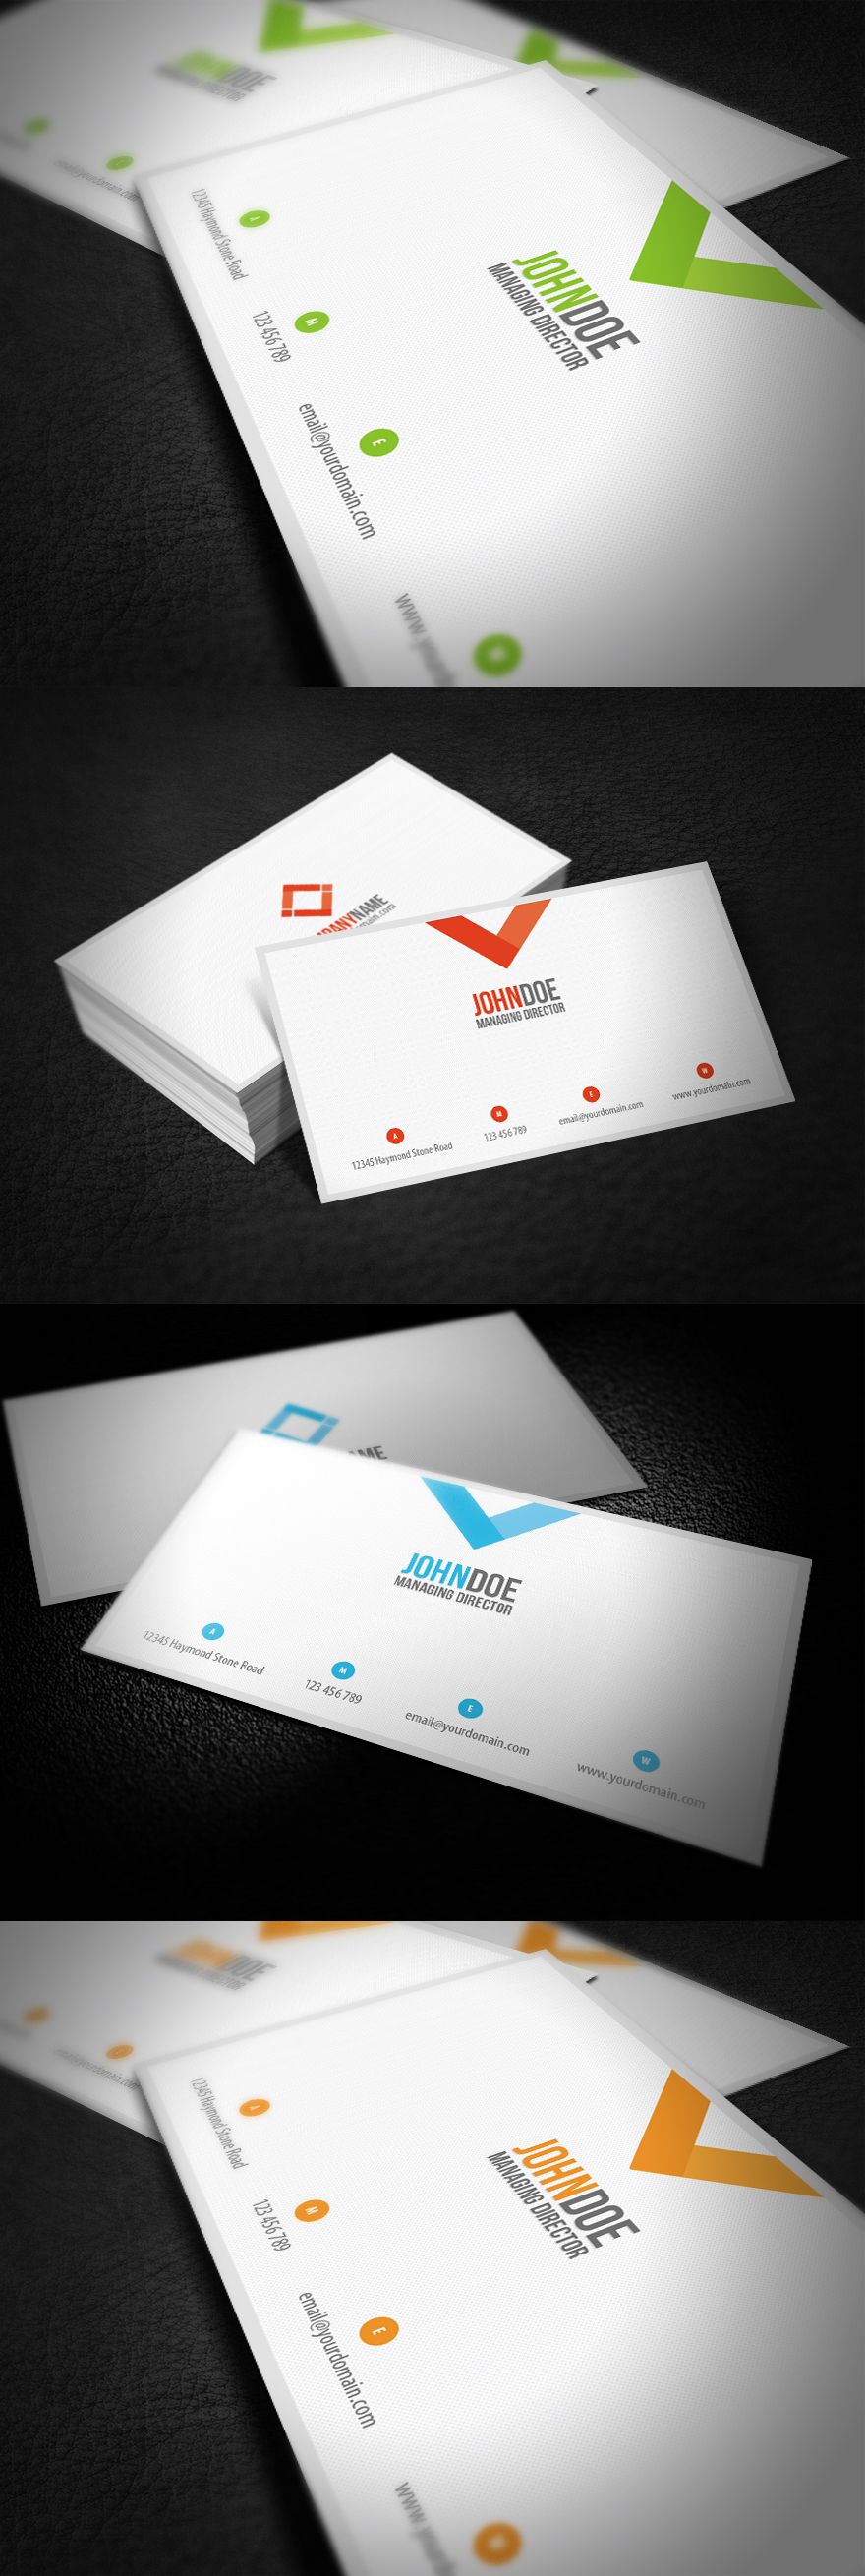 Original Business Card by glenngoh